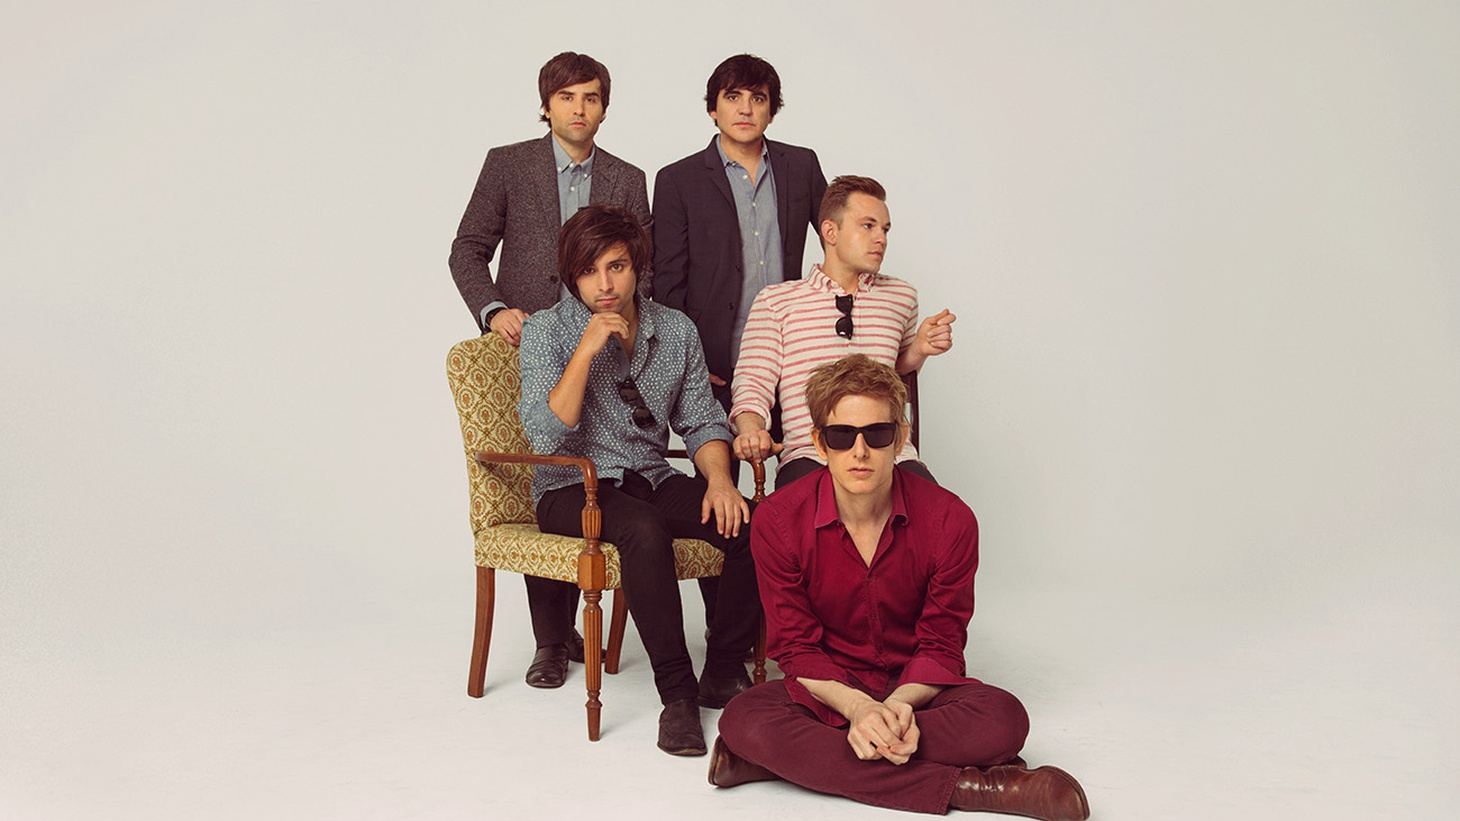 Spoon is one of the most consistently great rock bands of the modern era. This session features music from their last album, They Want My Soul.